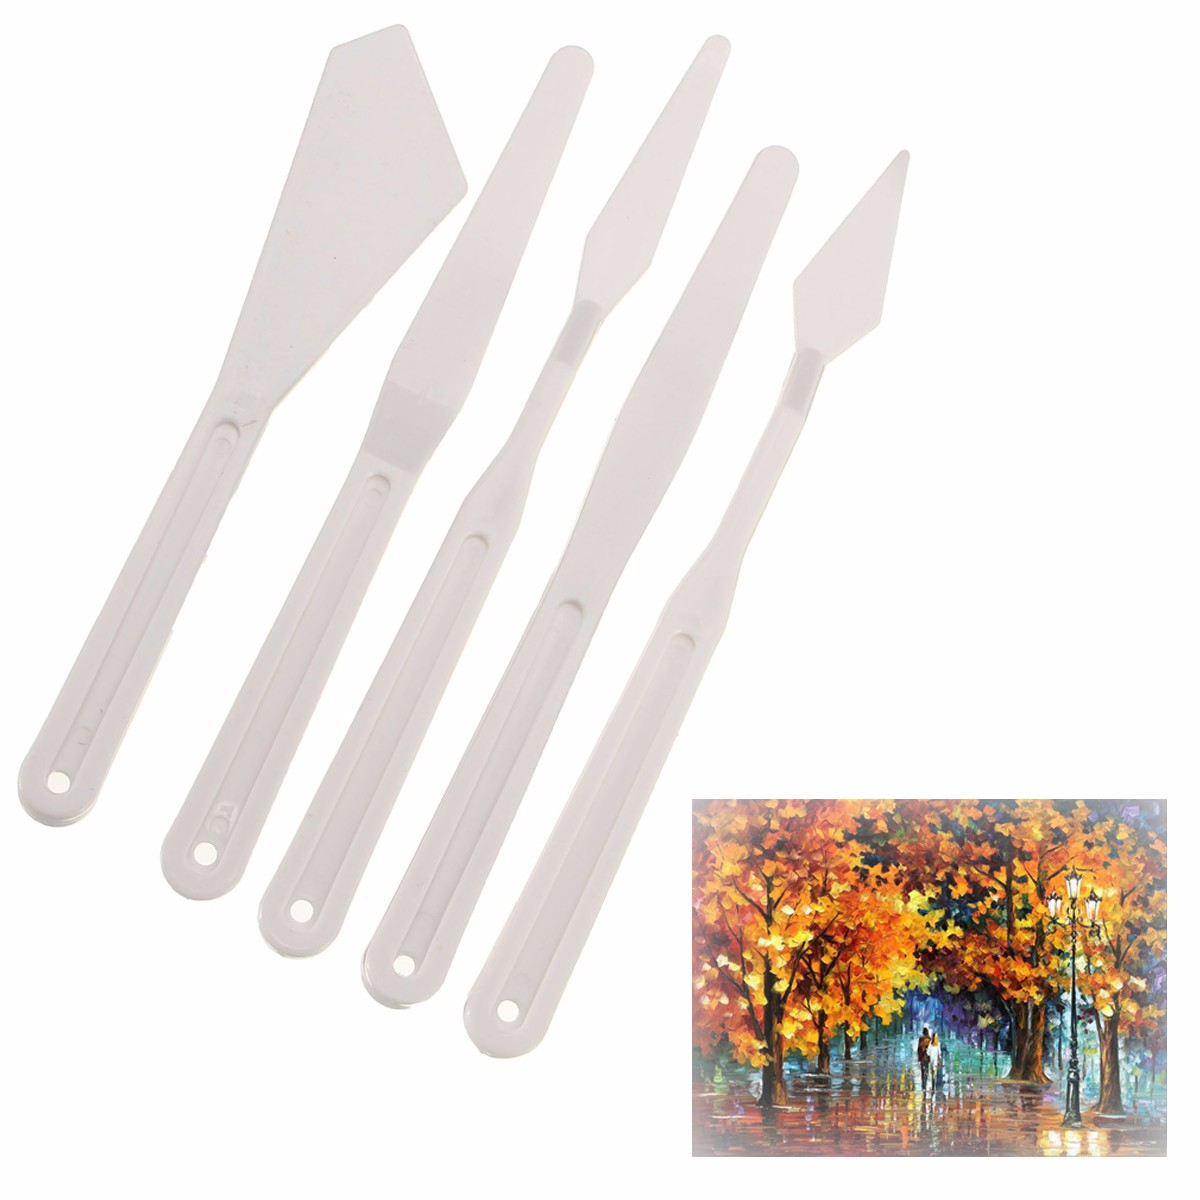 5pcs/set Excellent Quality Plastic Palette Knife Painting Mixing Tools For Watercolors Carving Oil Painting White Artist Supply